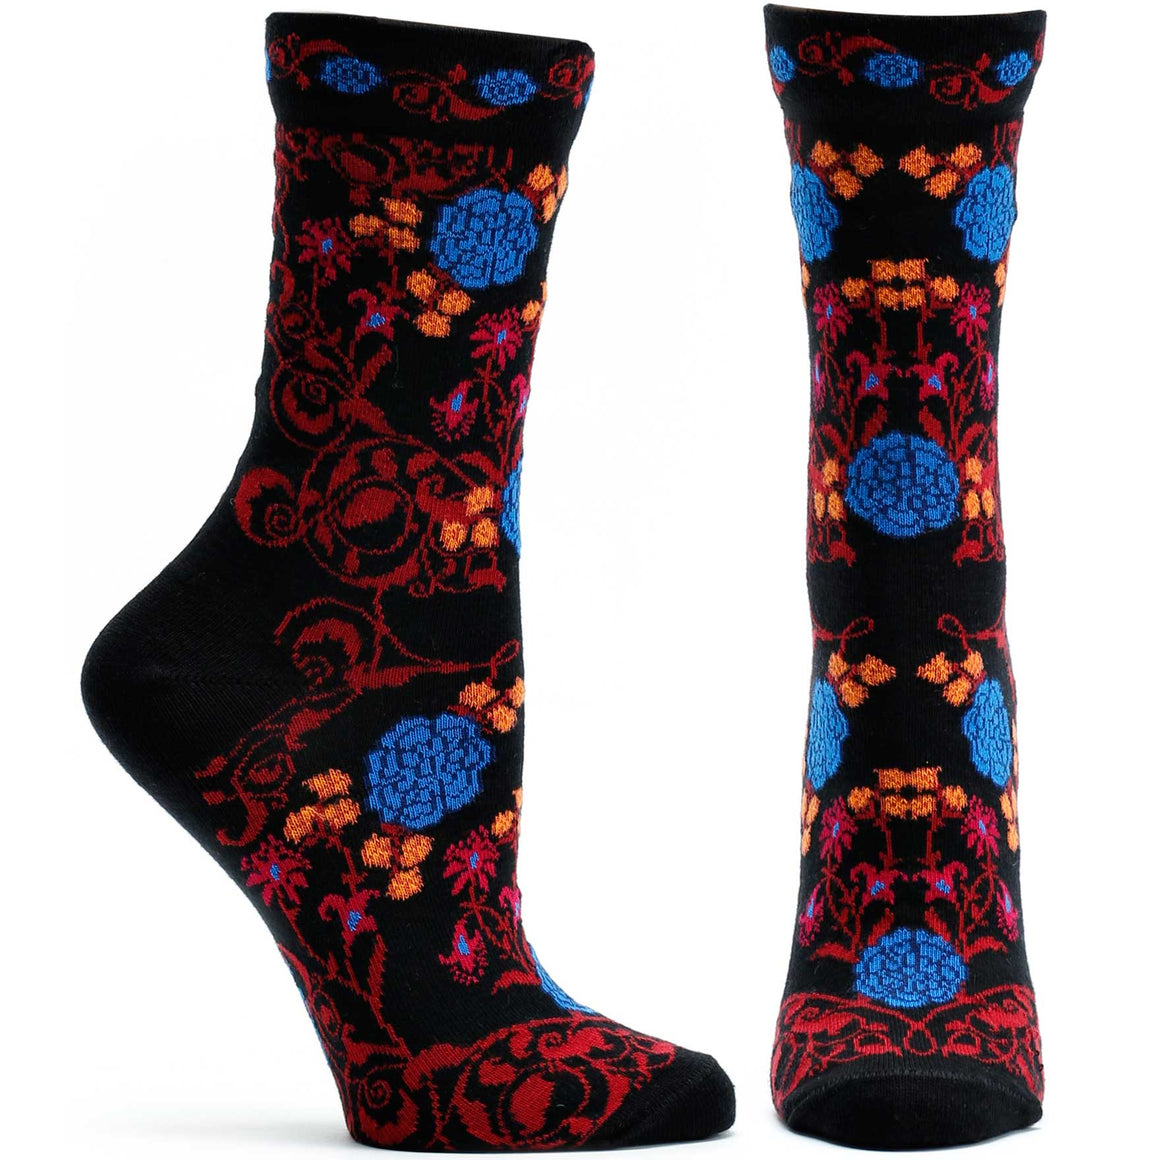 Ozone Design Rajasthani Rose Womens Floral Sock in Black